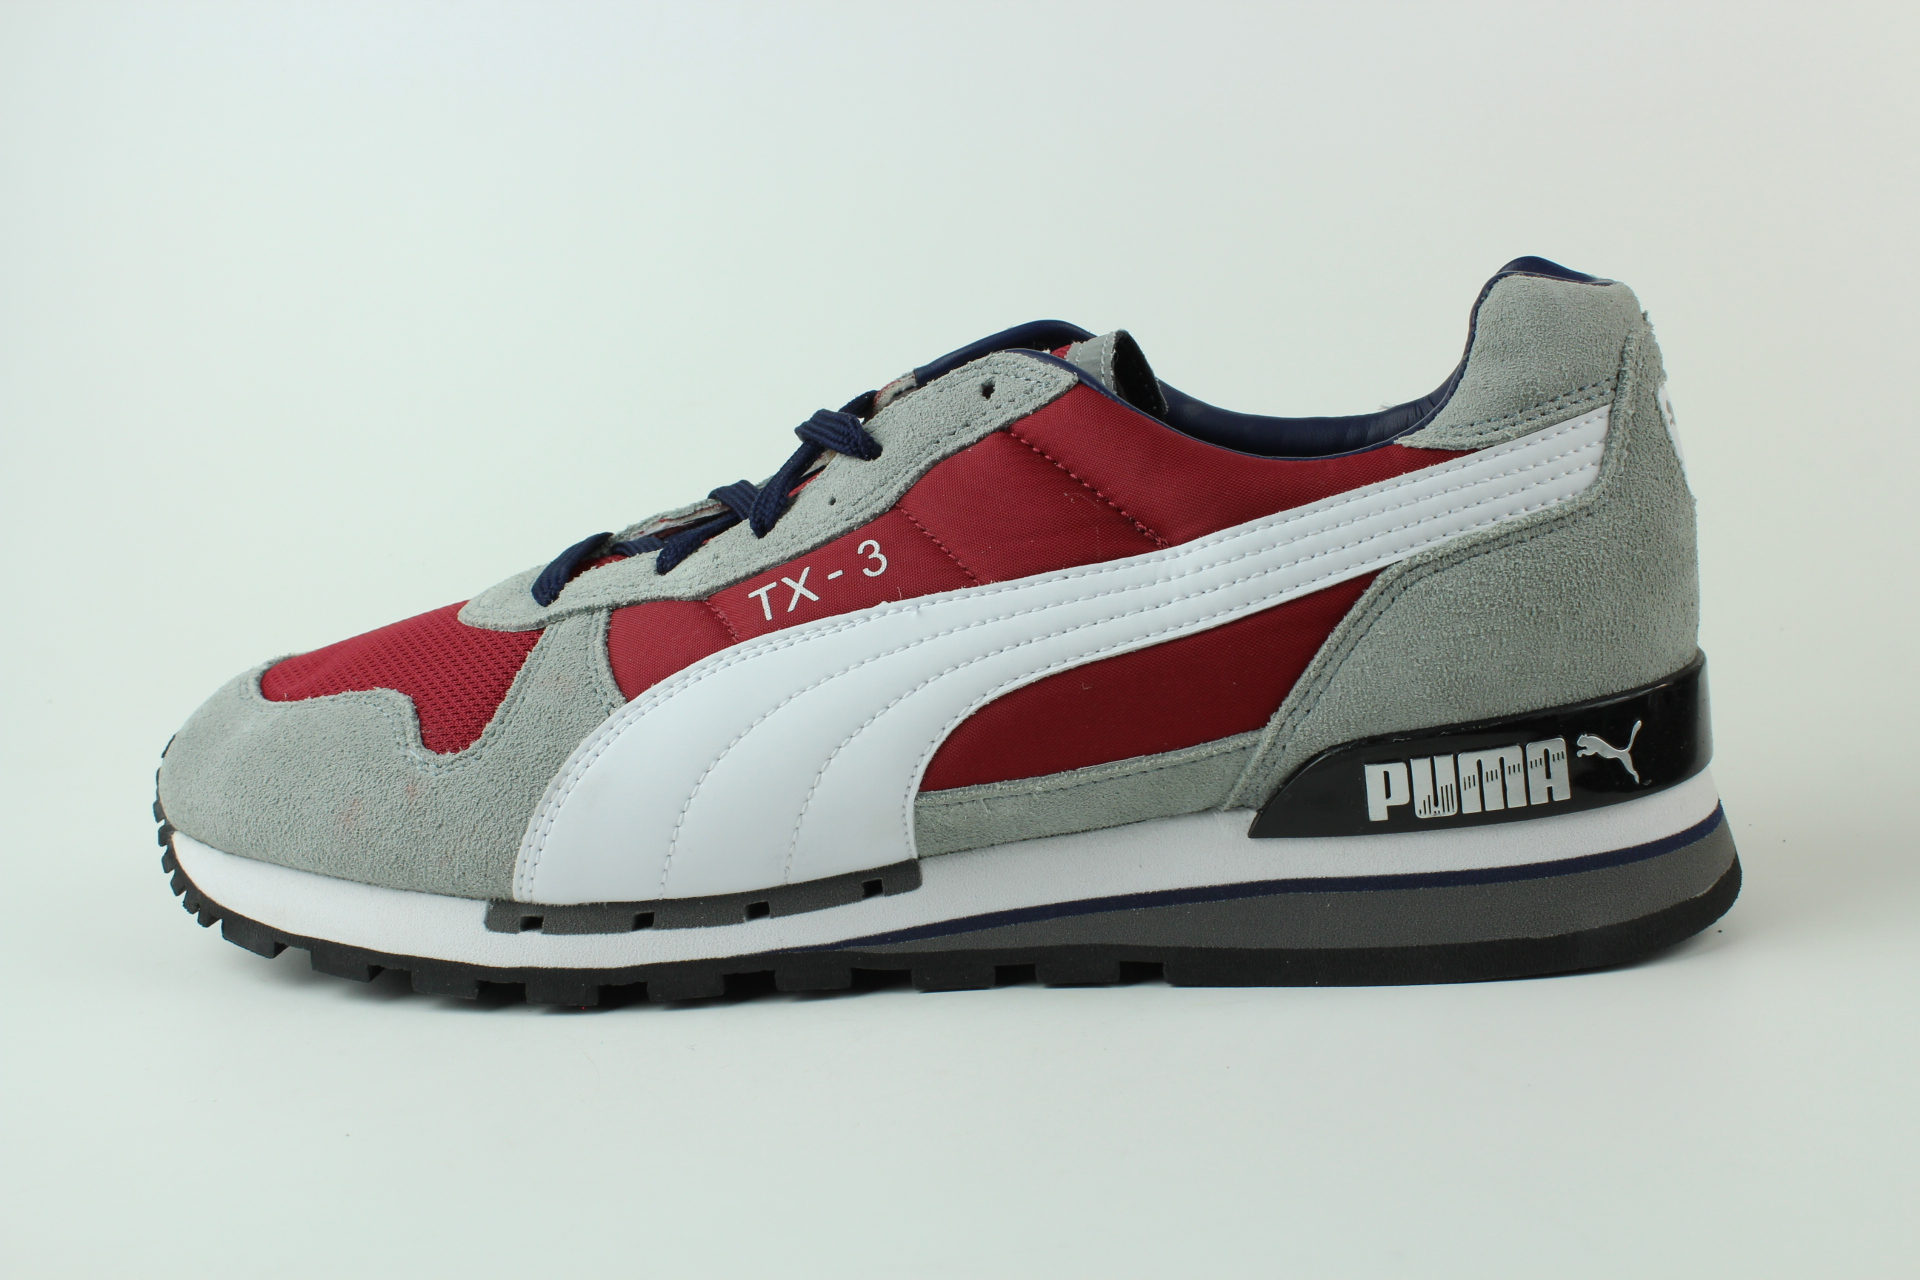 puma tx 3 retro sneaker gr 46 uk 11 schuhe rot grau jester red 341044 80 ebay. Black Bedroom Furniture Sets. Home Design Ideas